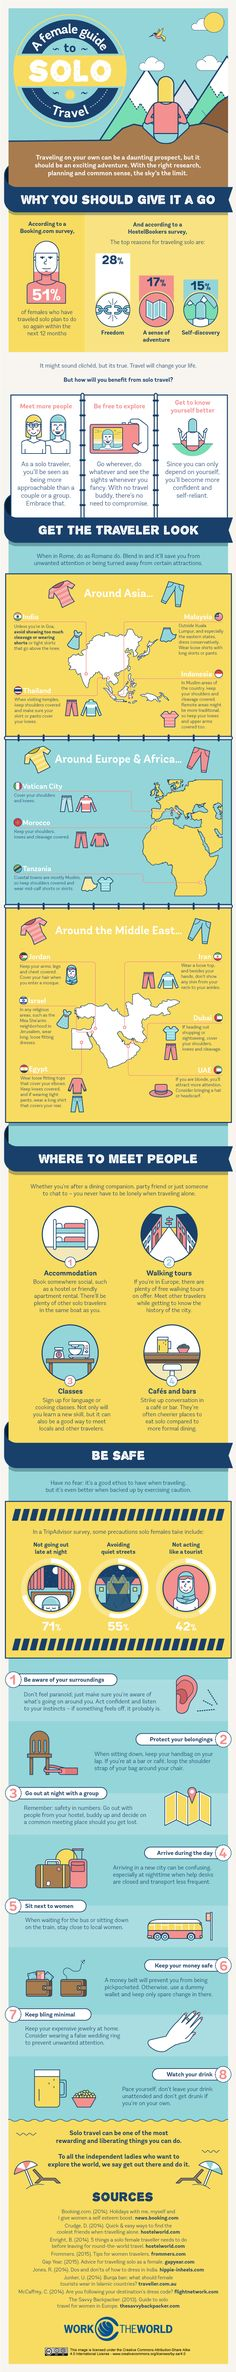 A Female Guide To Solo Travel Infographic | A New Life Wandering